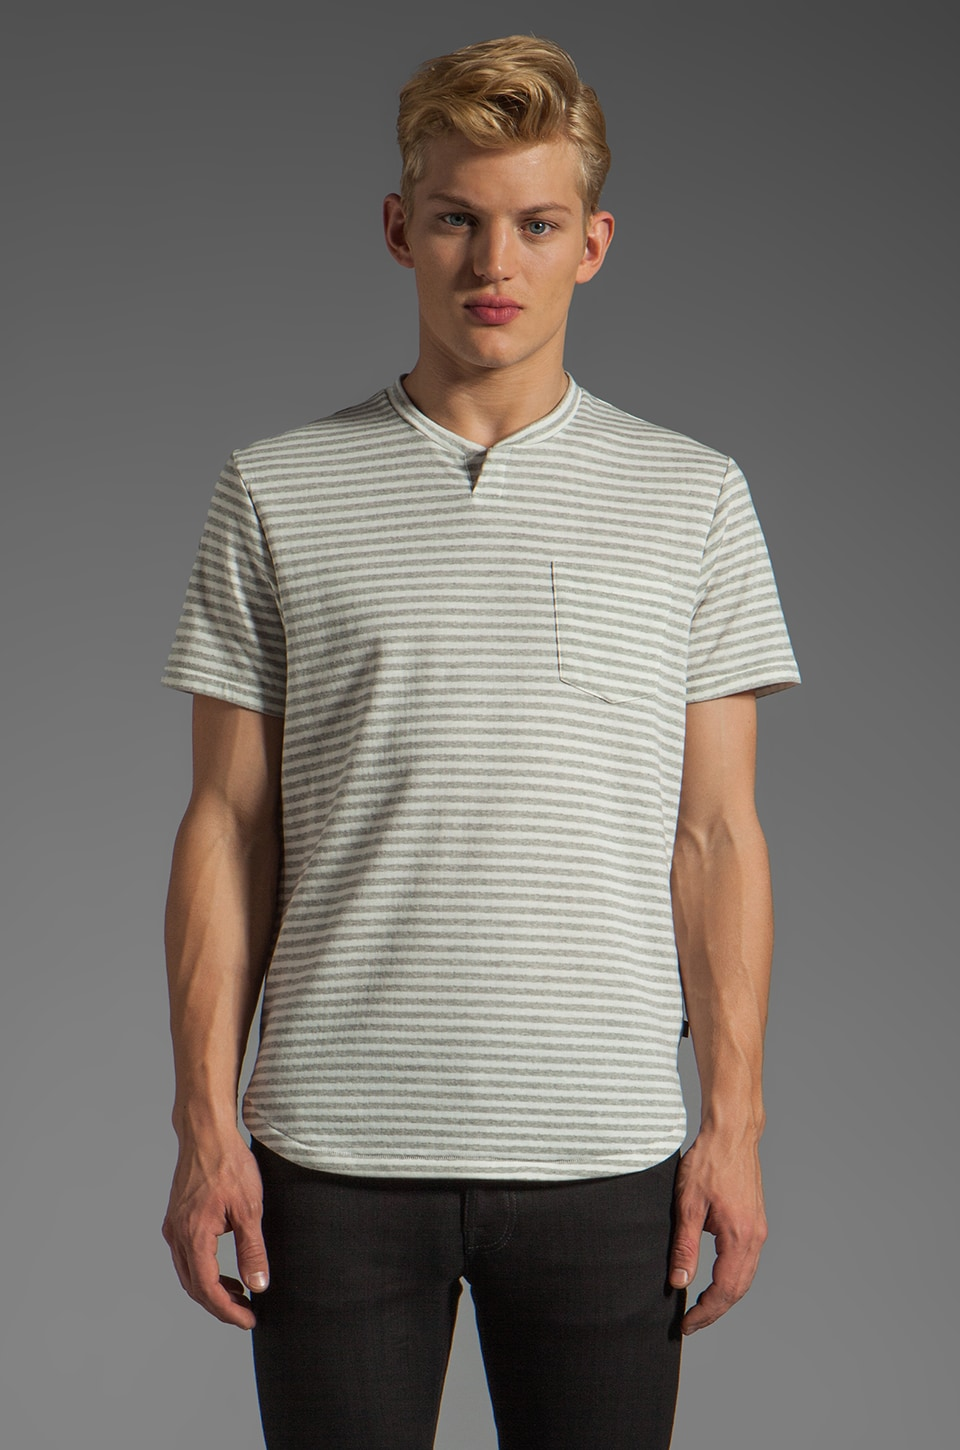 COMUNE Dorsey Tee in Grey Stripe